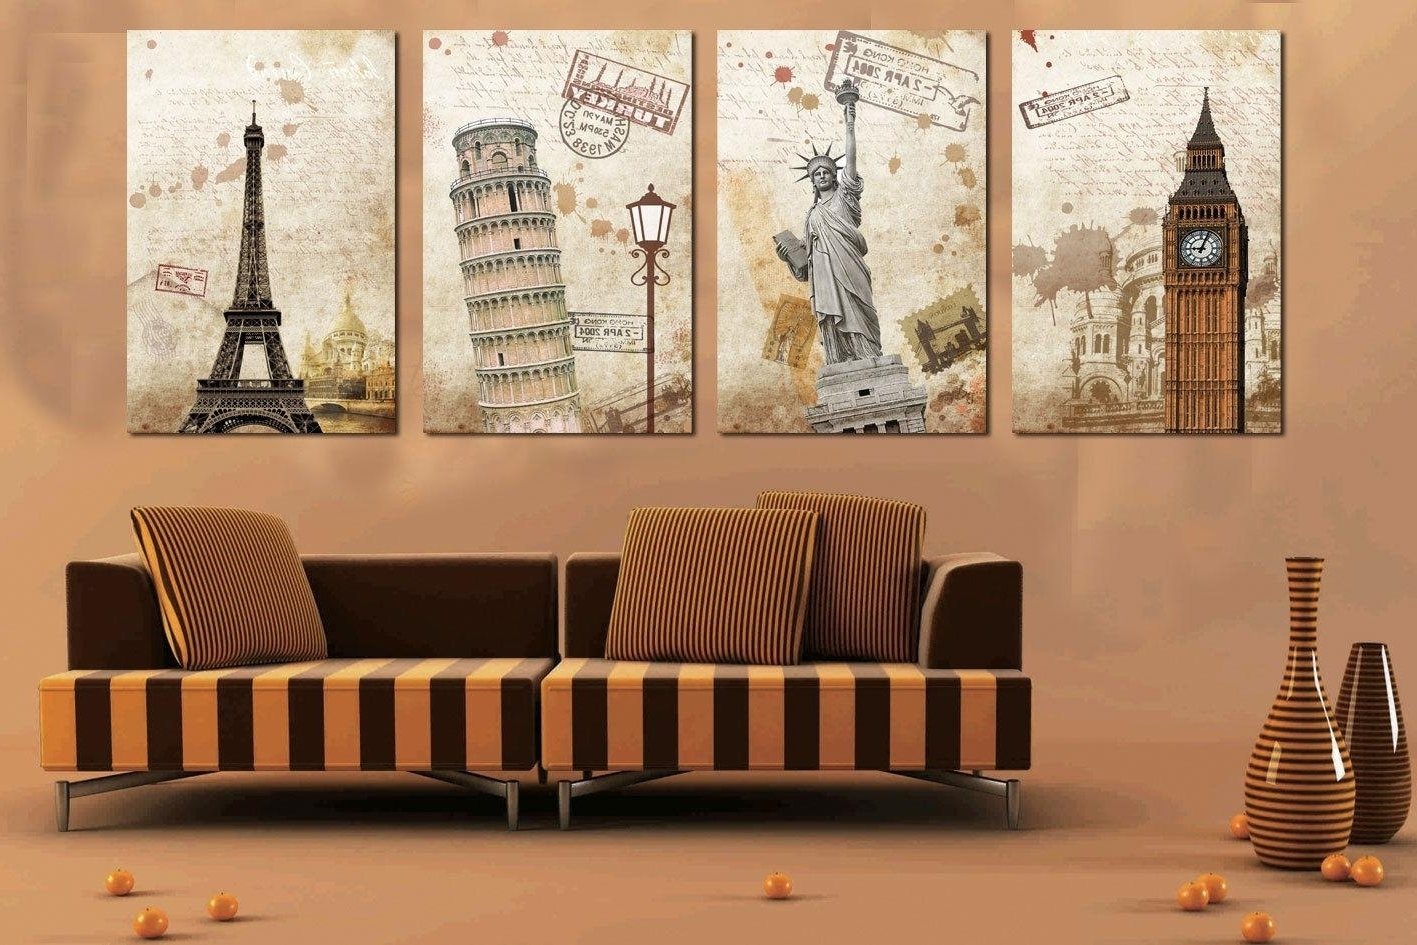 Cheap Wall Art Nice Cheap Wall Art – Wall Decoration And Wall Art Ideas Pertaining To Newest Cheap Wall Art (Gallery 1 of 15)